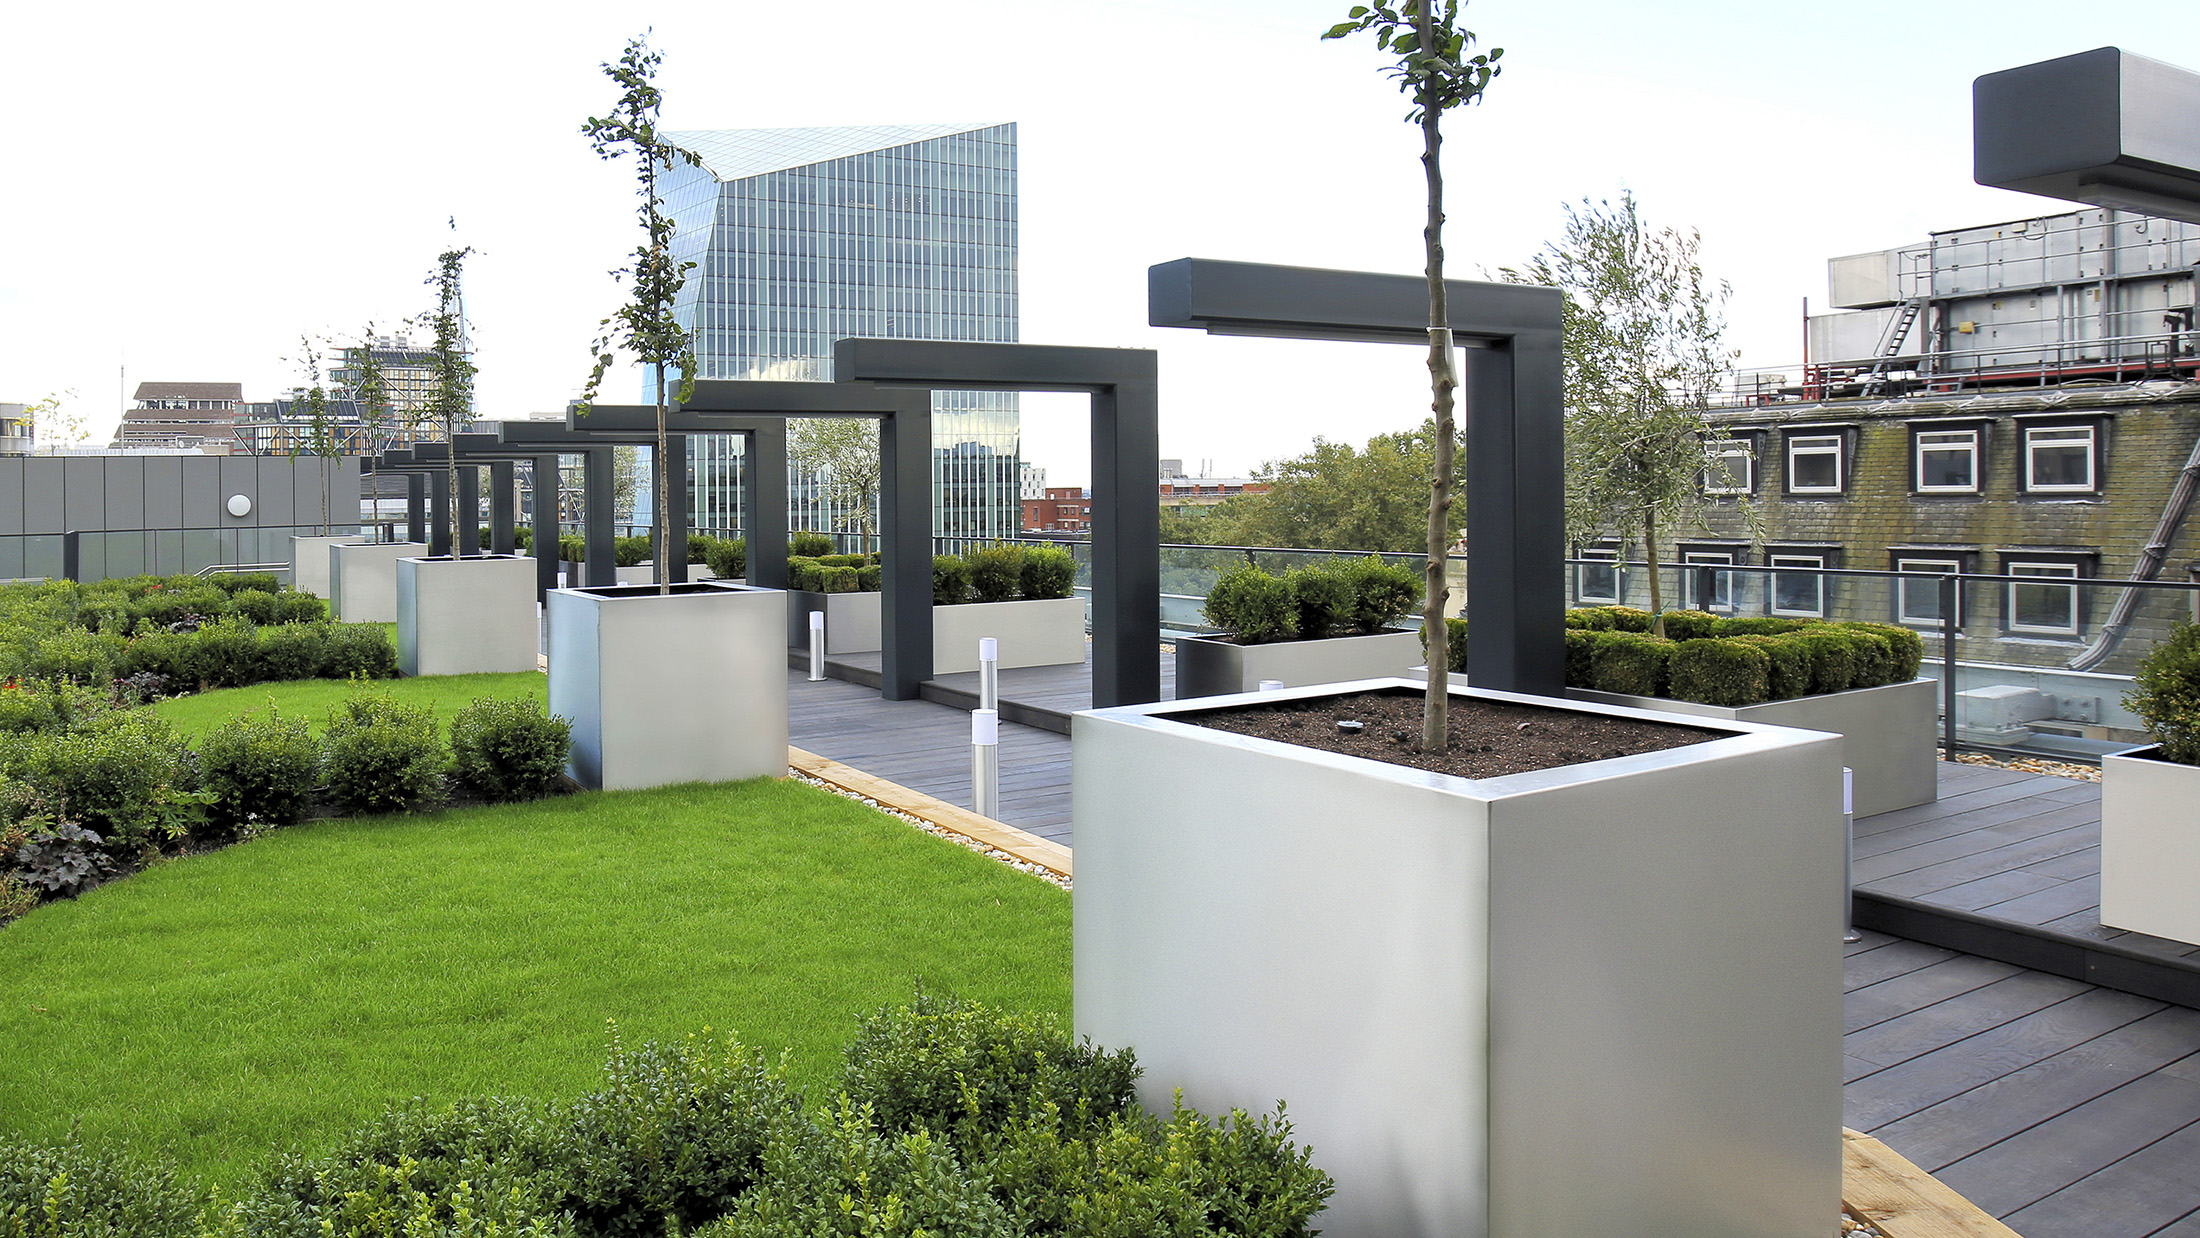 South Bank Planters by Europlanters